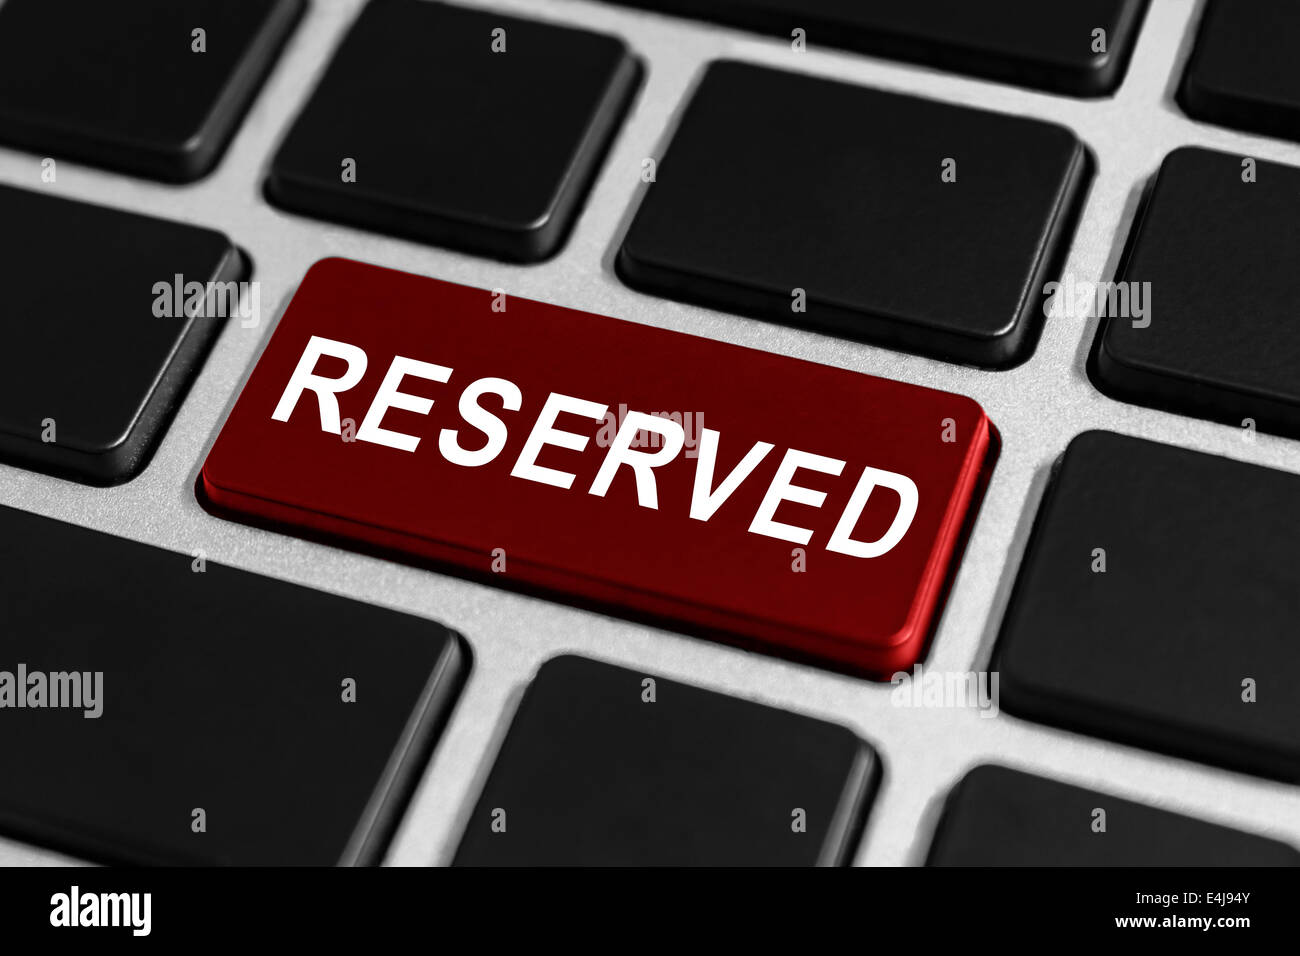 reserved red button on keyboard, business concept - Stock Image